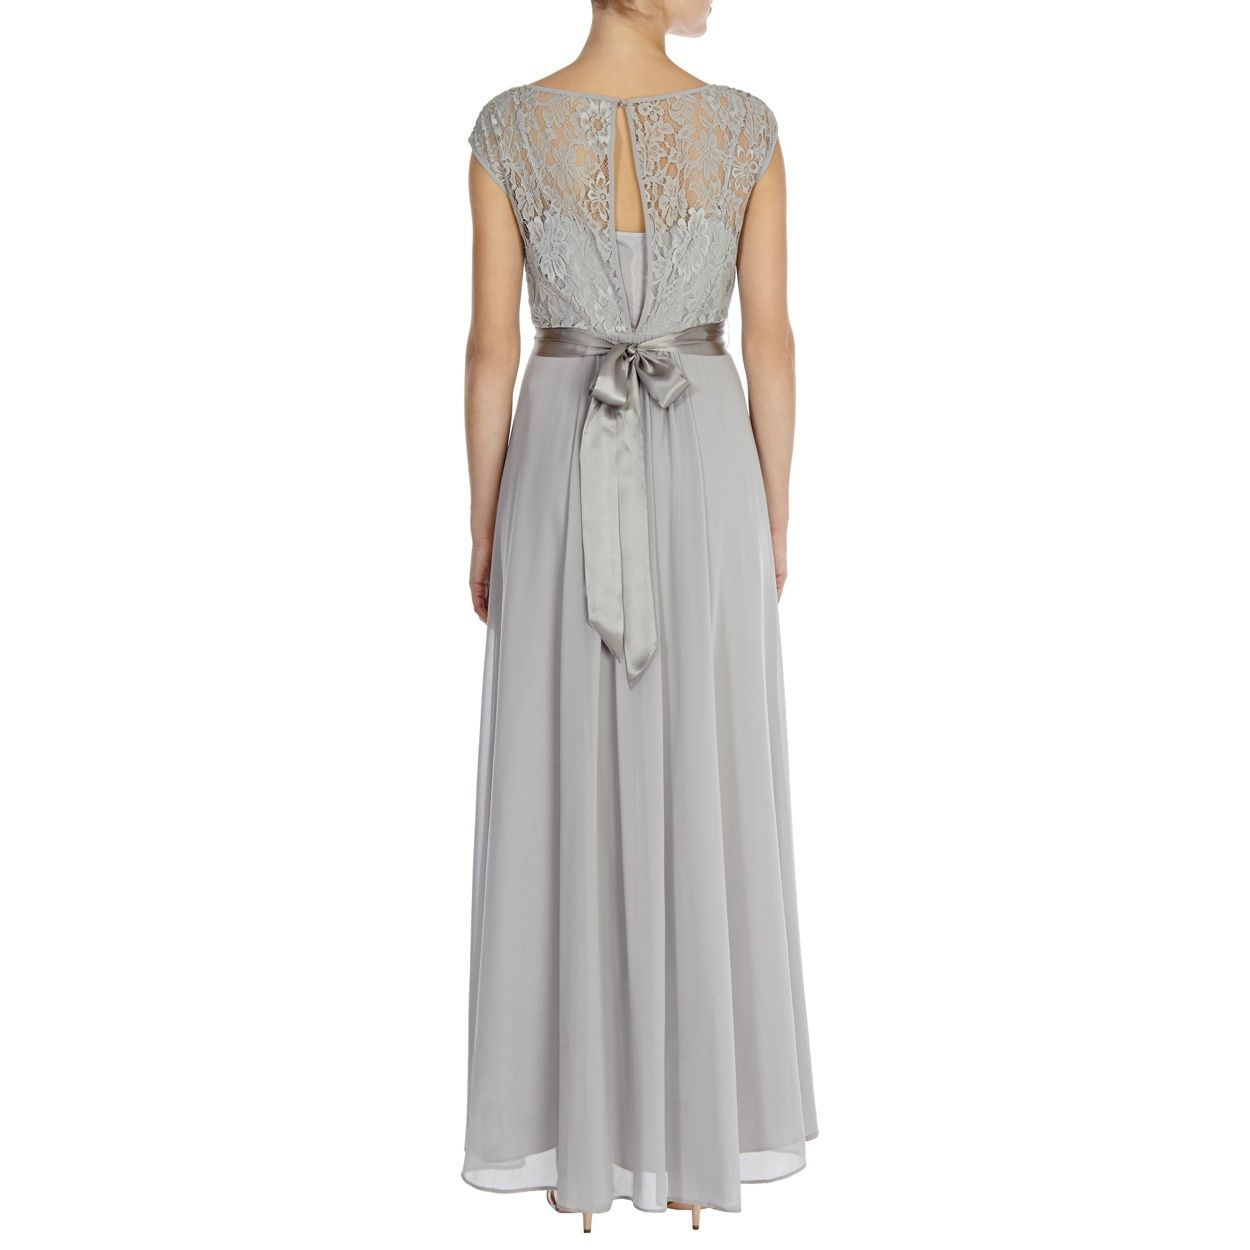 Bridesmaid dress - Coast Coast lori lee lace maxi dress- at Debenhams.com